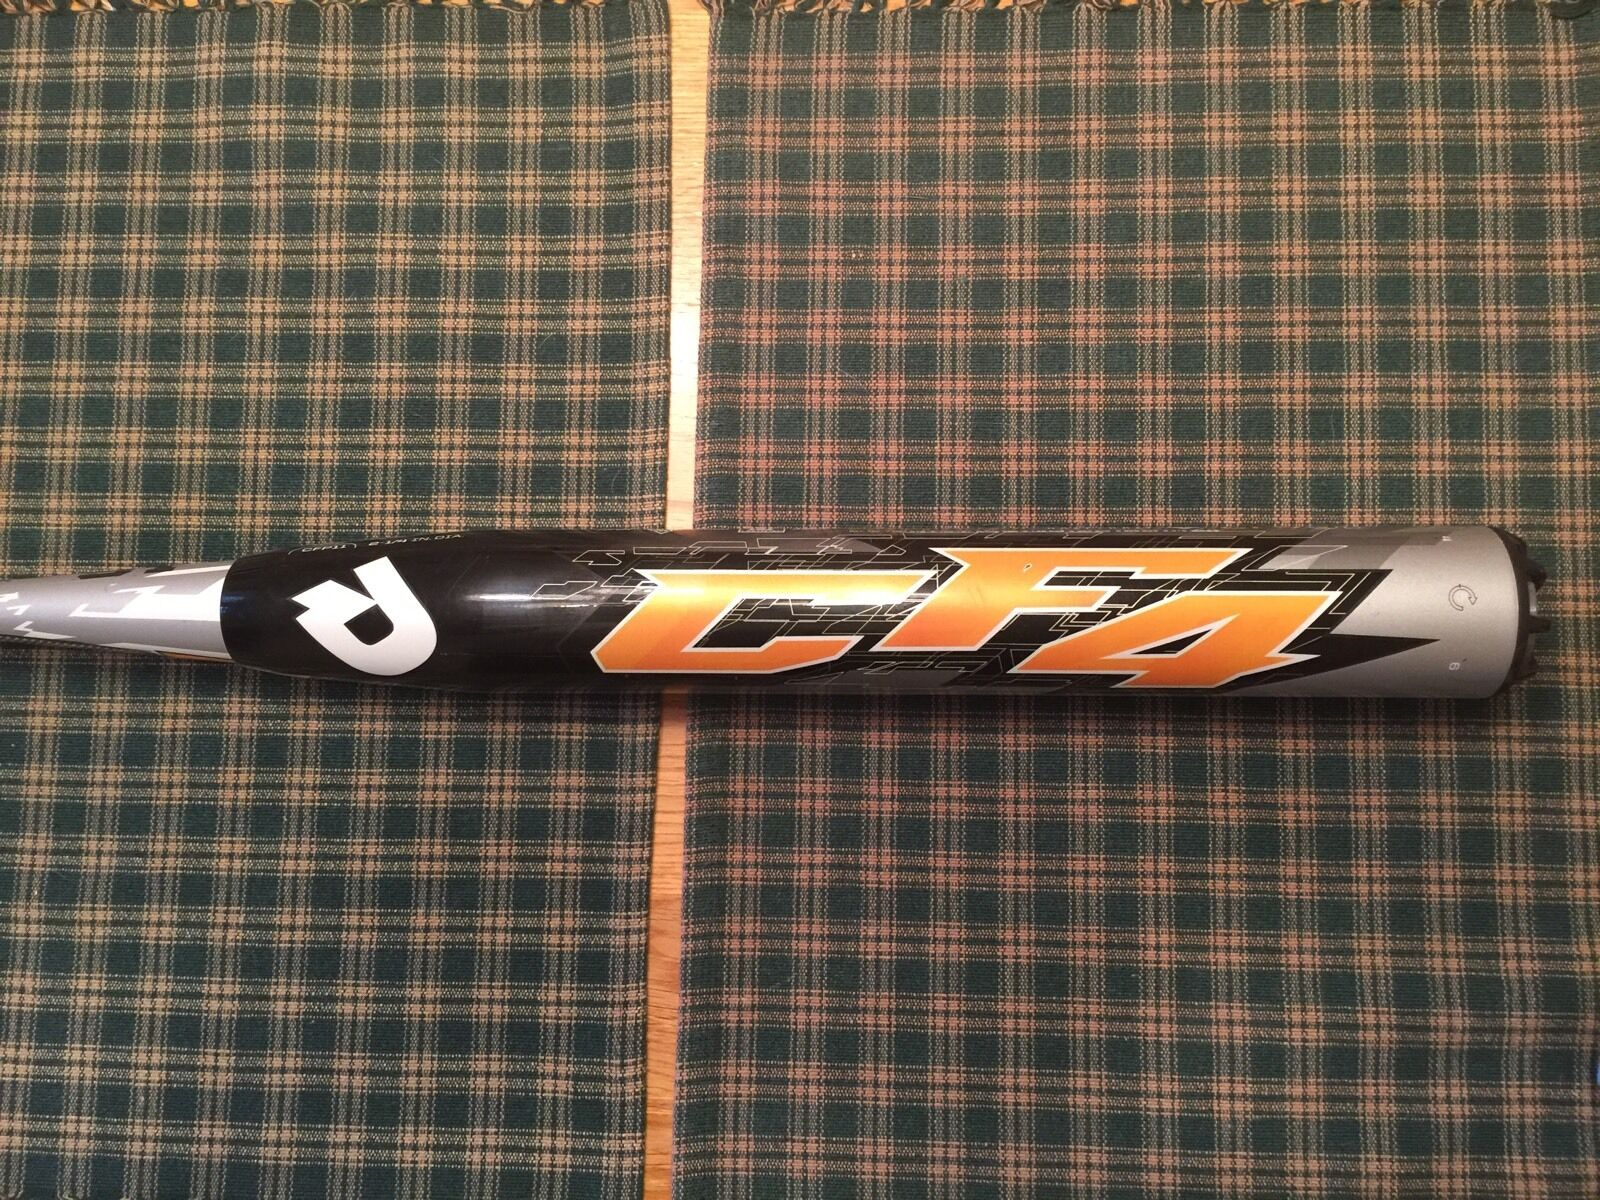 Raro  deben ver Demarini Cf4 St Fastpitch Softball 34 24 (-10) cfp11 Asa Hot